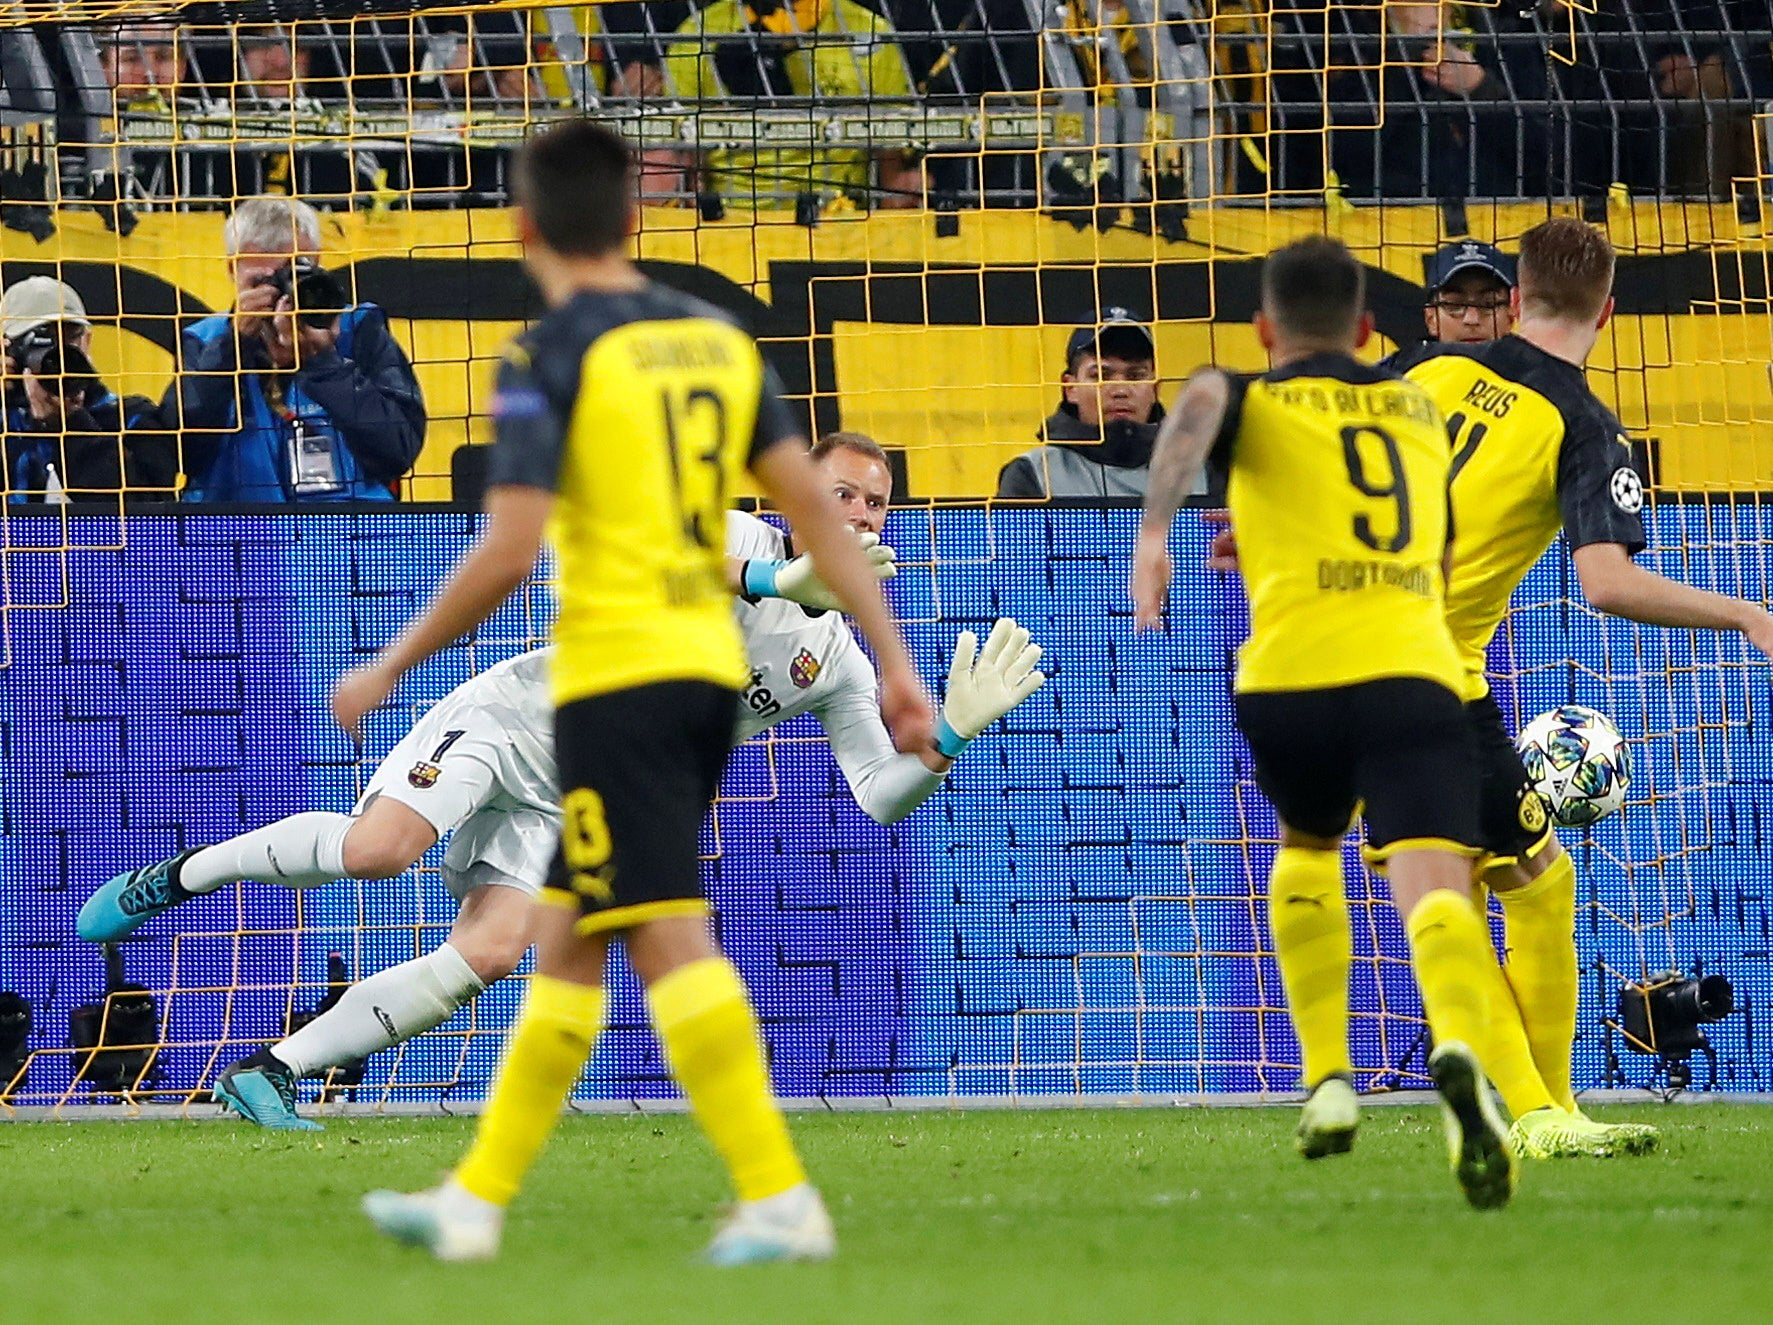 Borussia Dortmund vs Barcelona player ratings: Jadon Sancho bright but Marc-Andre ter Stegen steals show